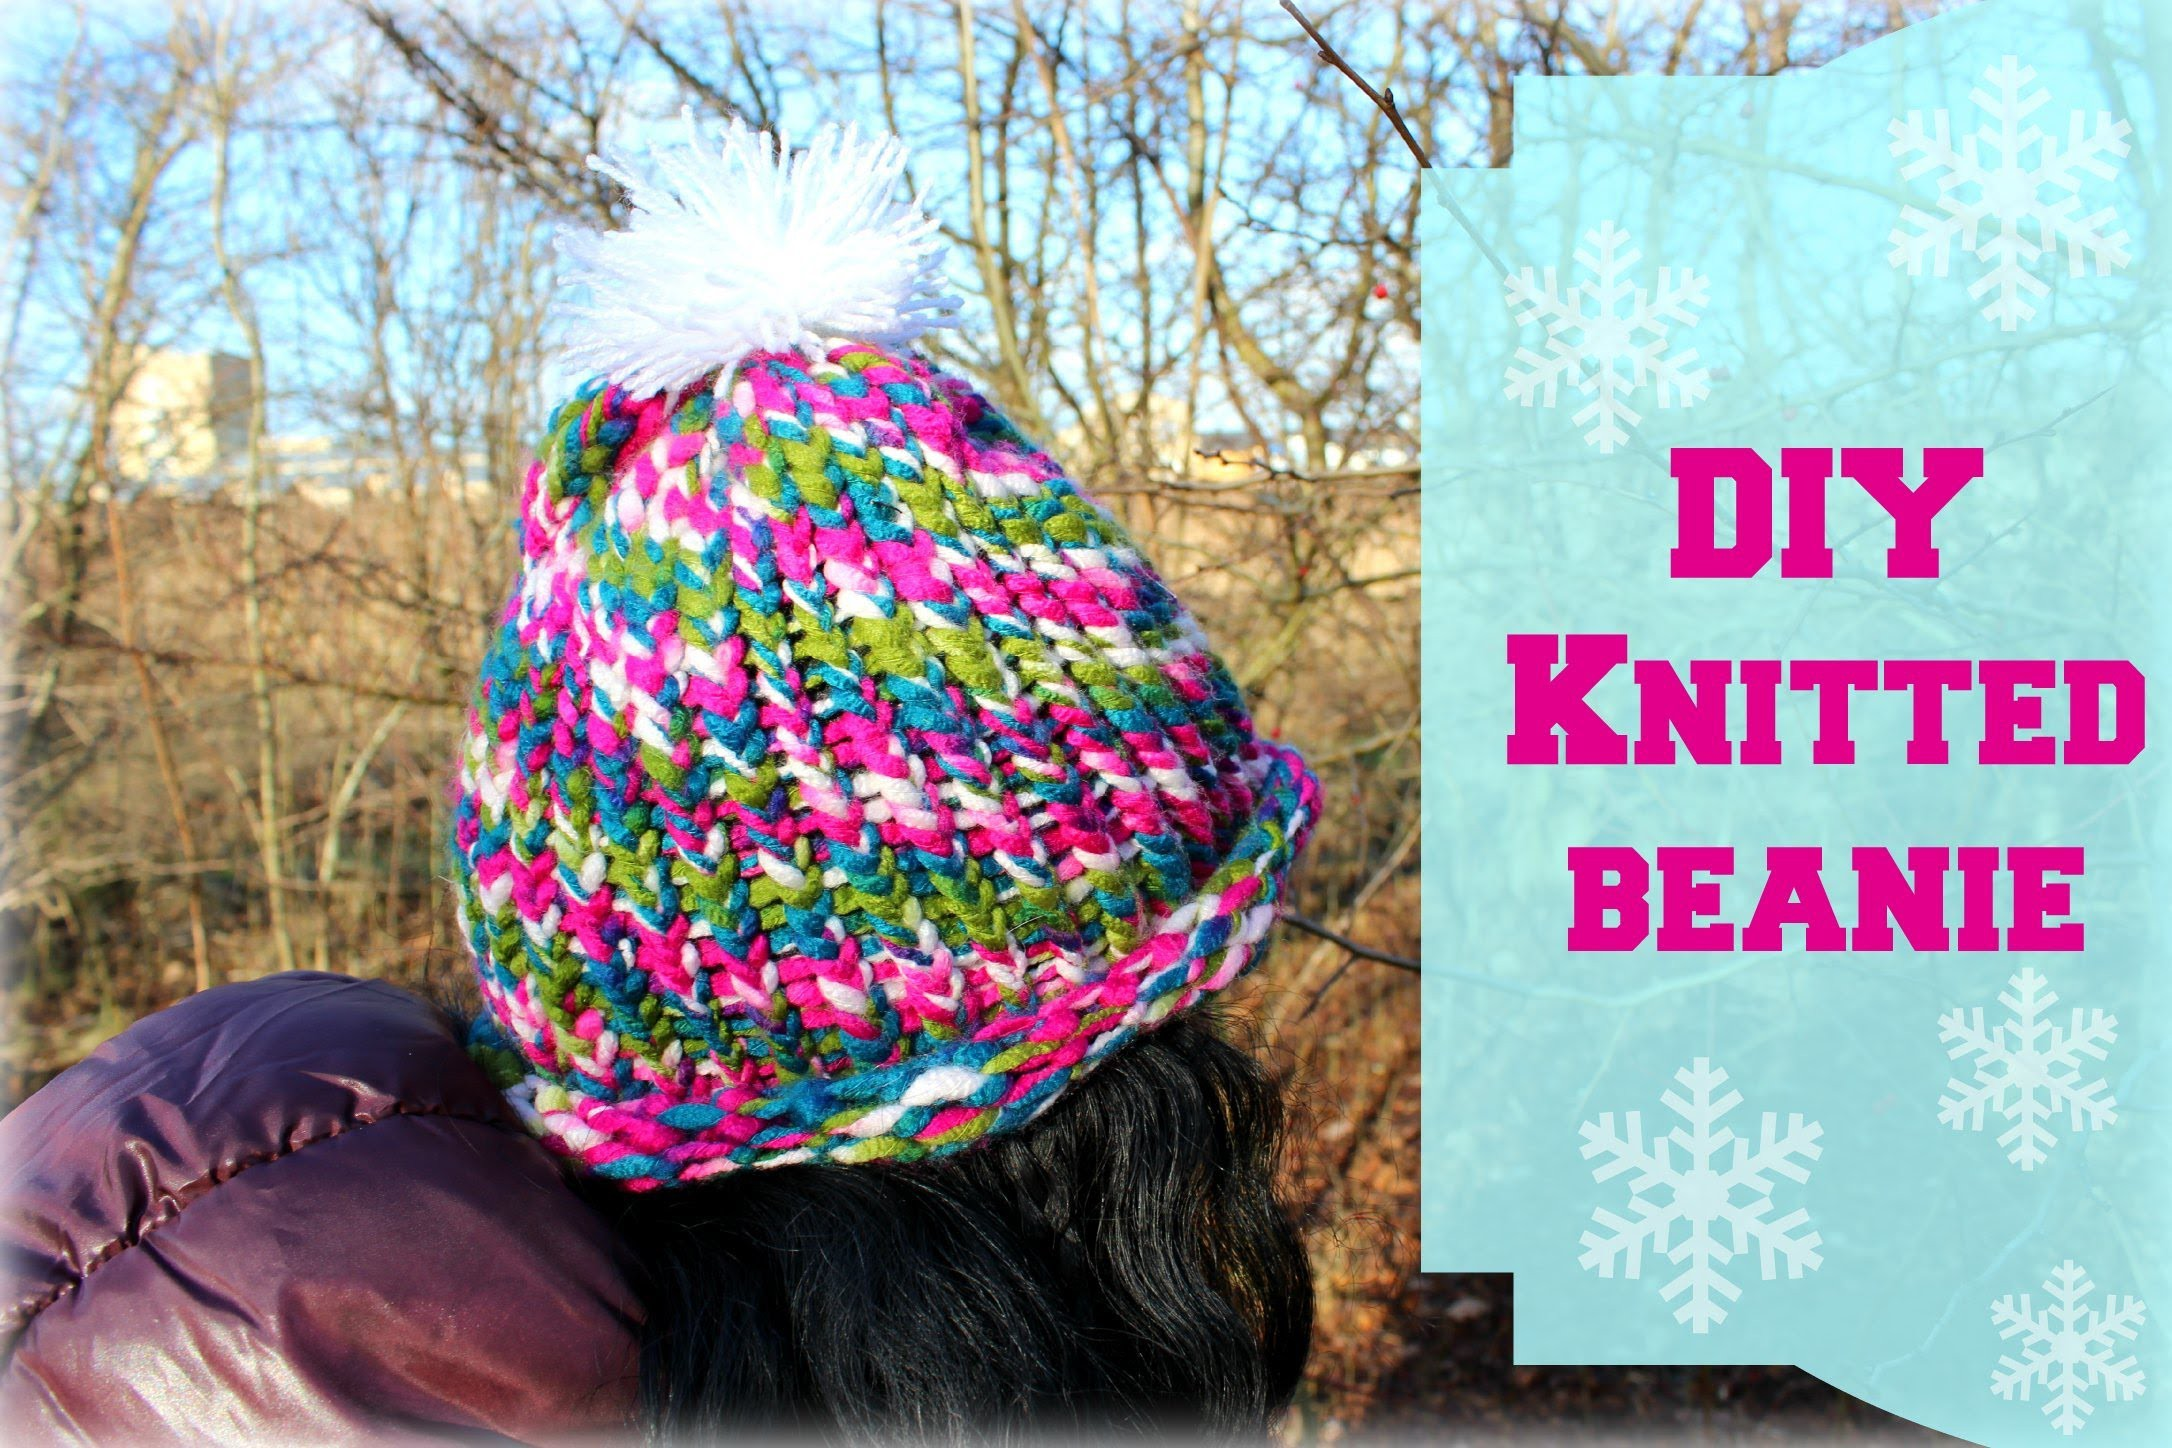 DIY knitted beanie inspired by SaraBeautyCorner